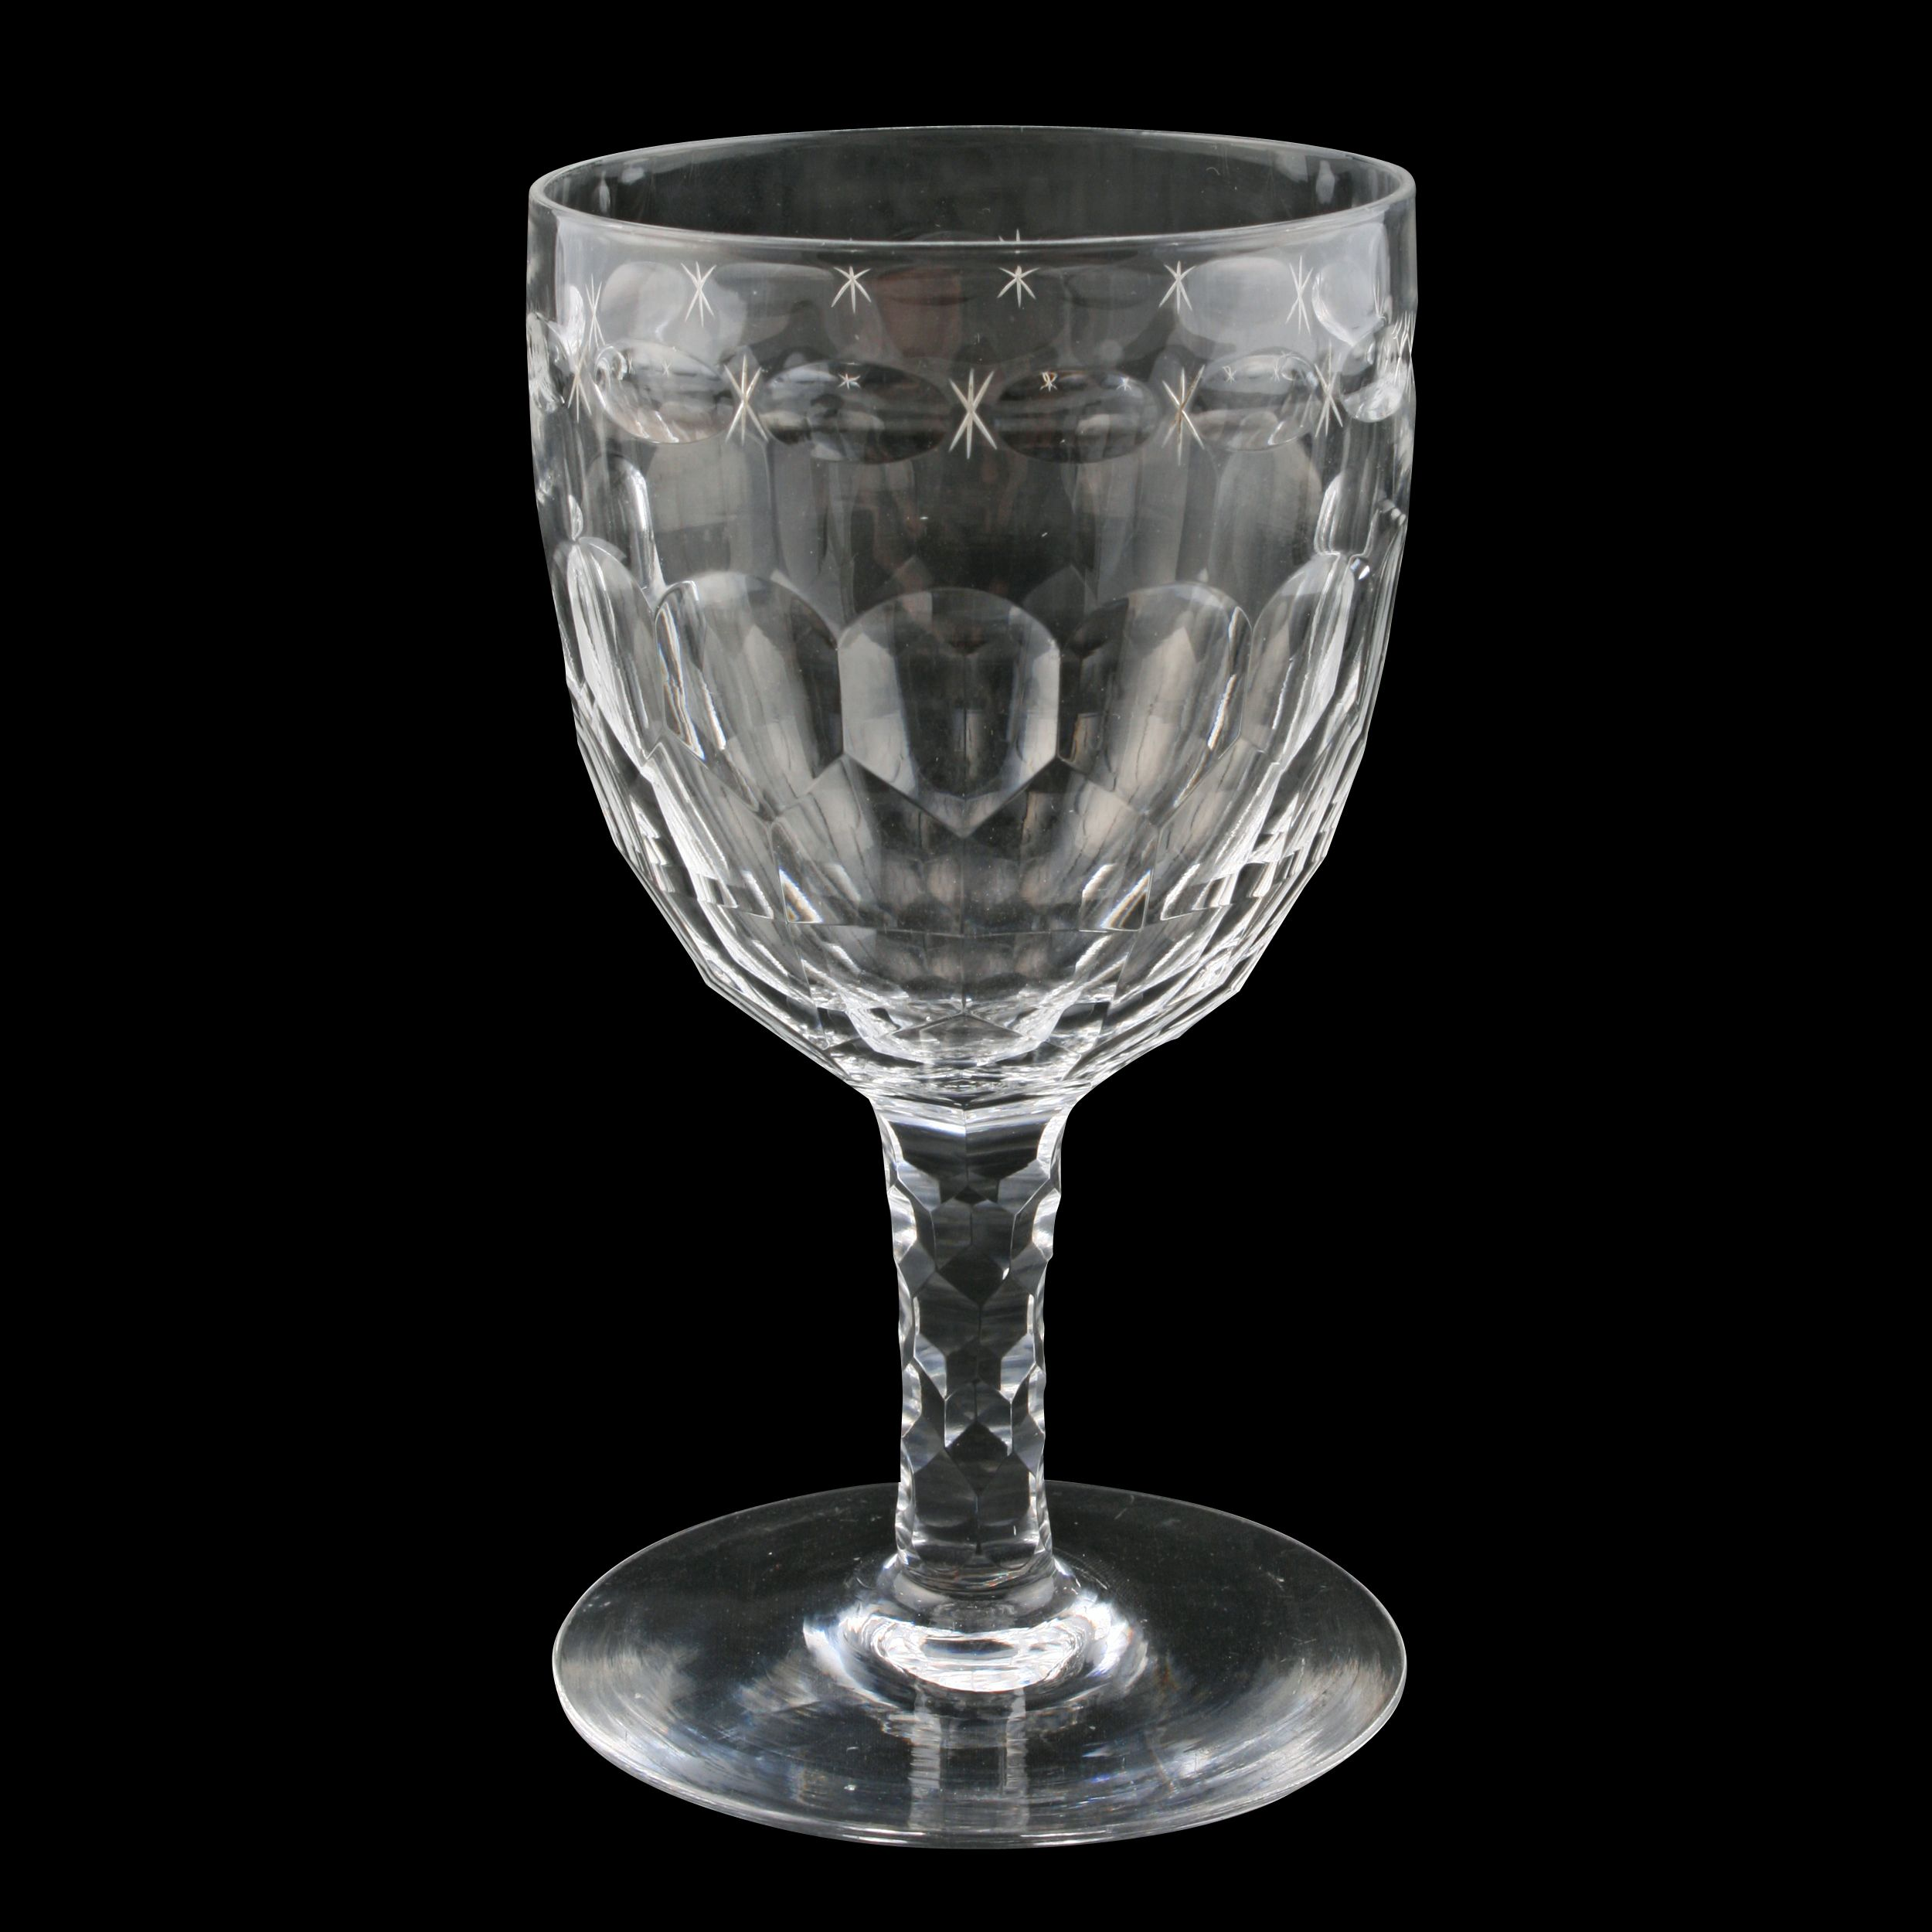 Antique Cut Crystal Wine Glasses or Water Goblets, set of 4